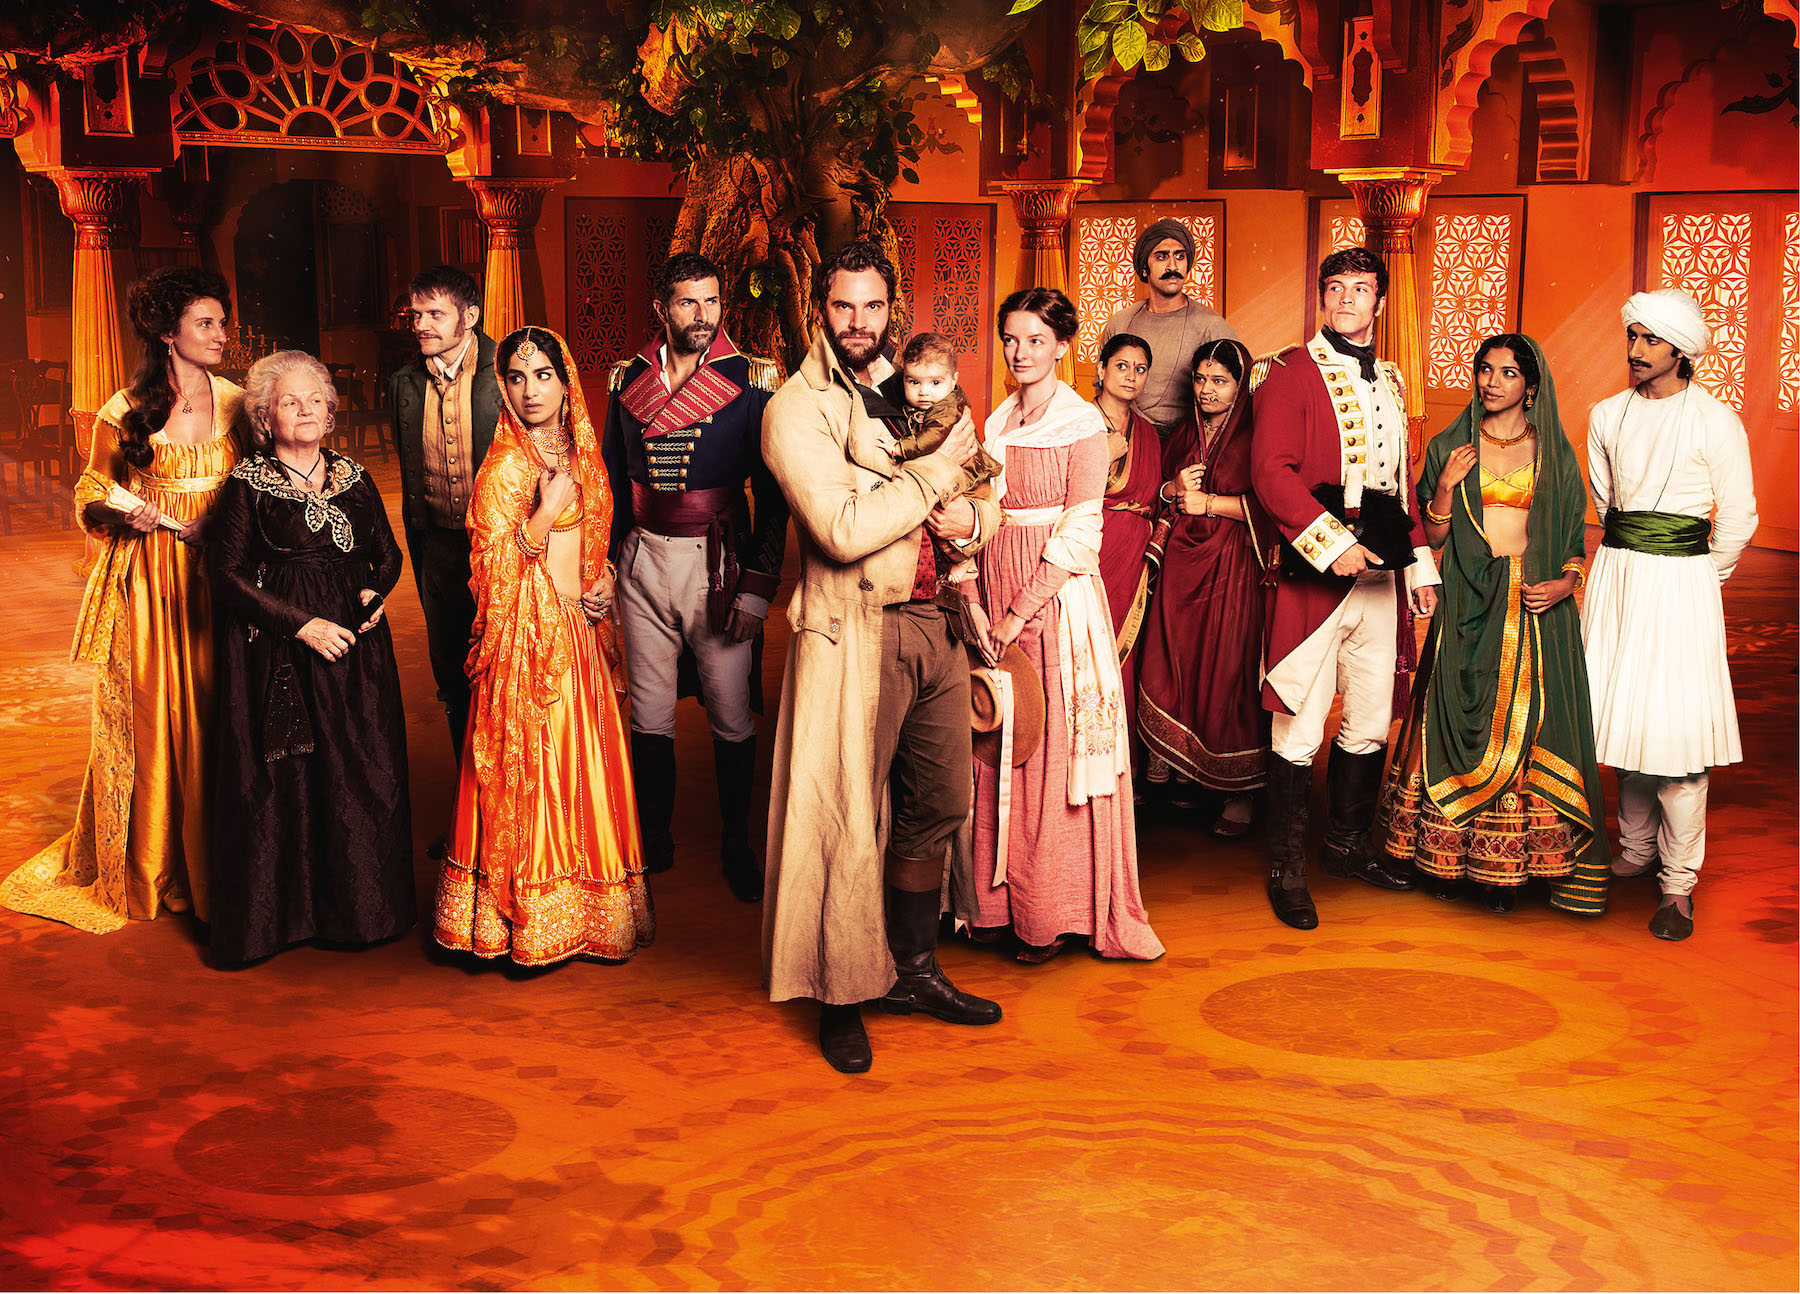 Group photo of Beecham House cast